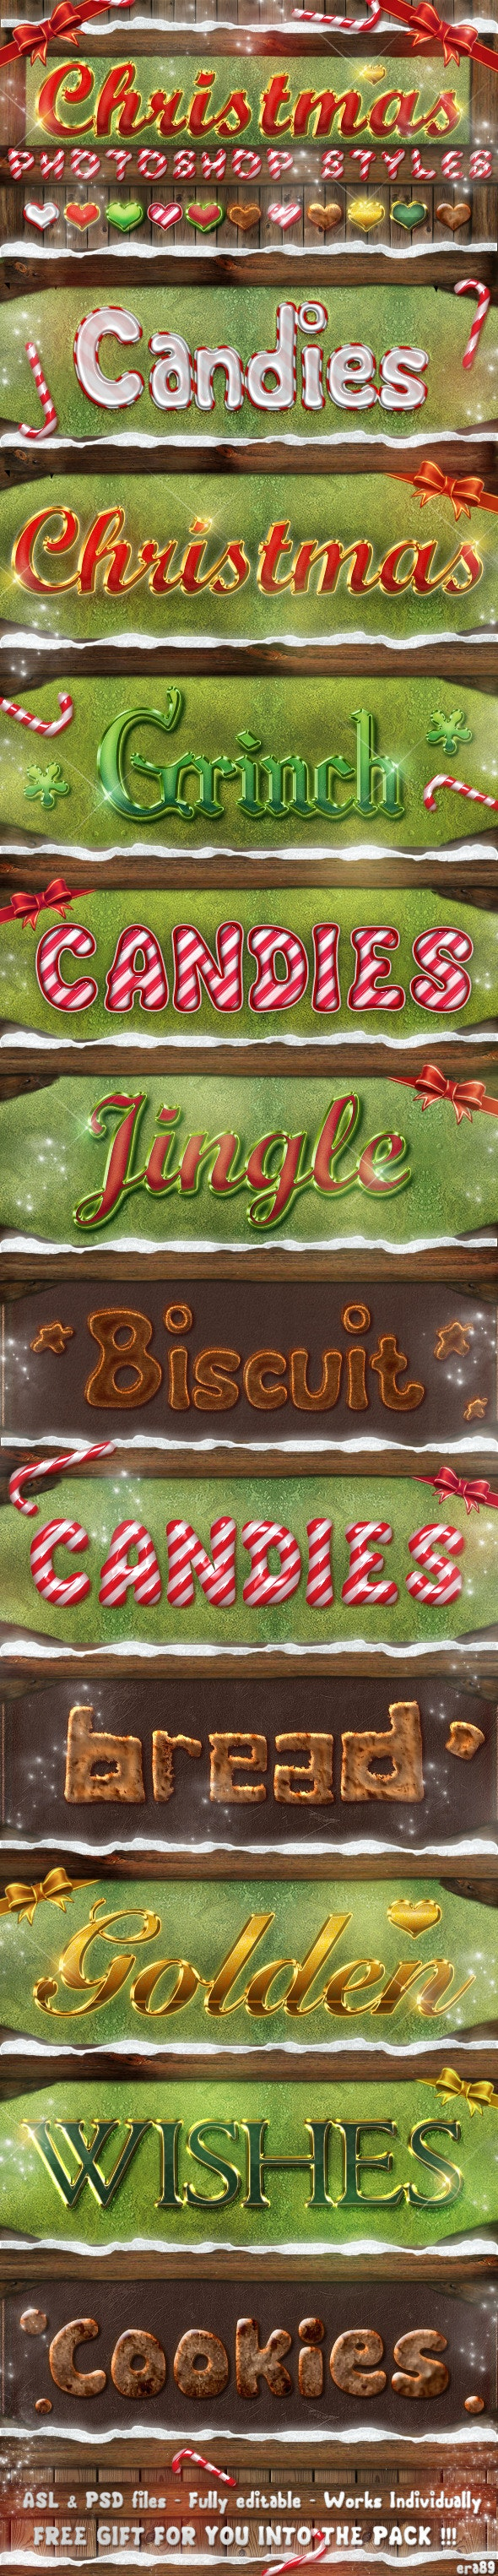 Christmas Photoshop Styles - Text Effects - Text Effects Styles